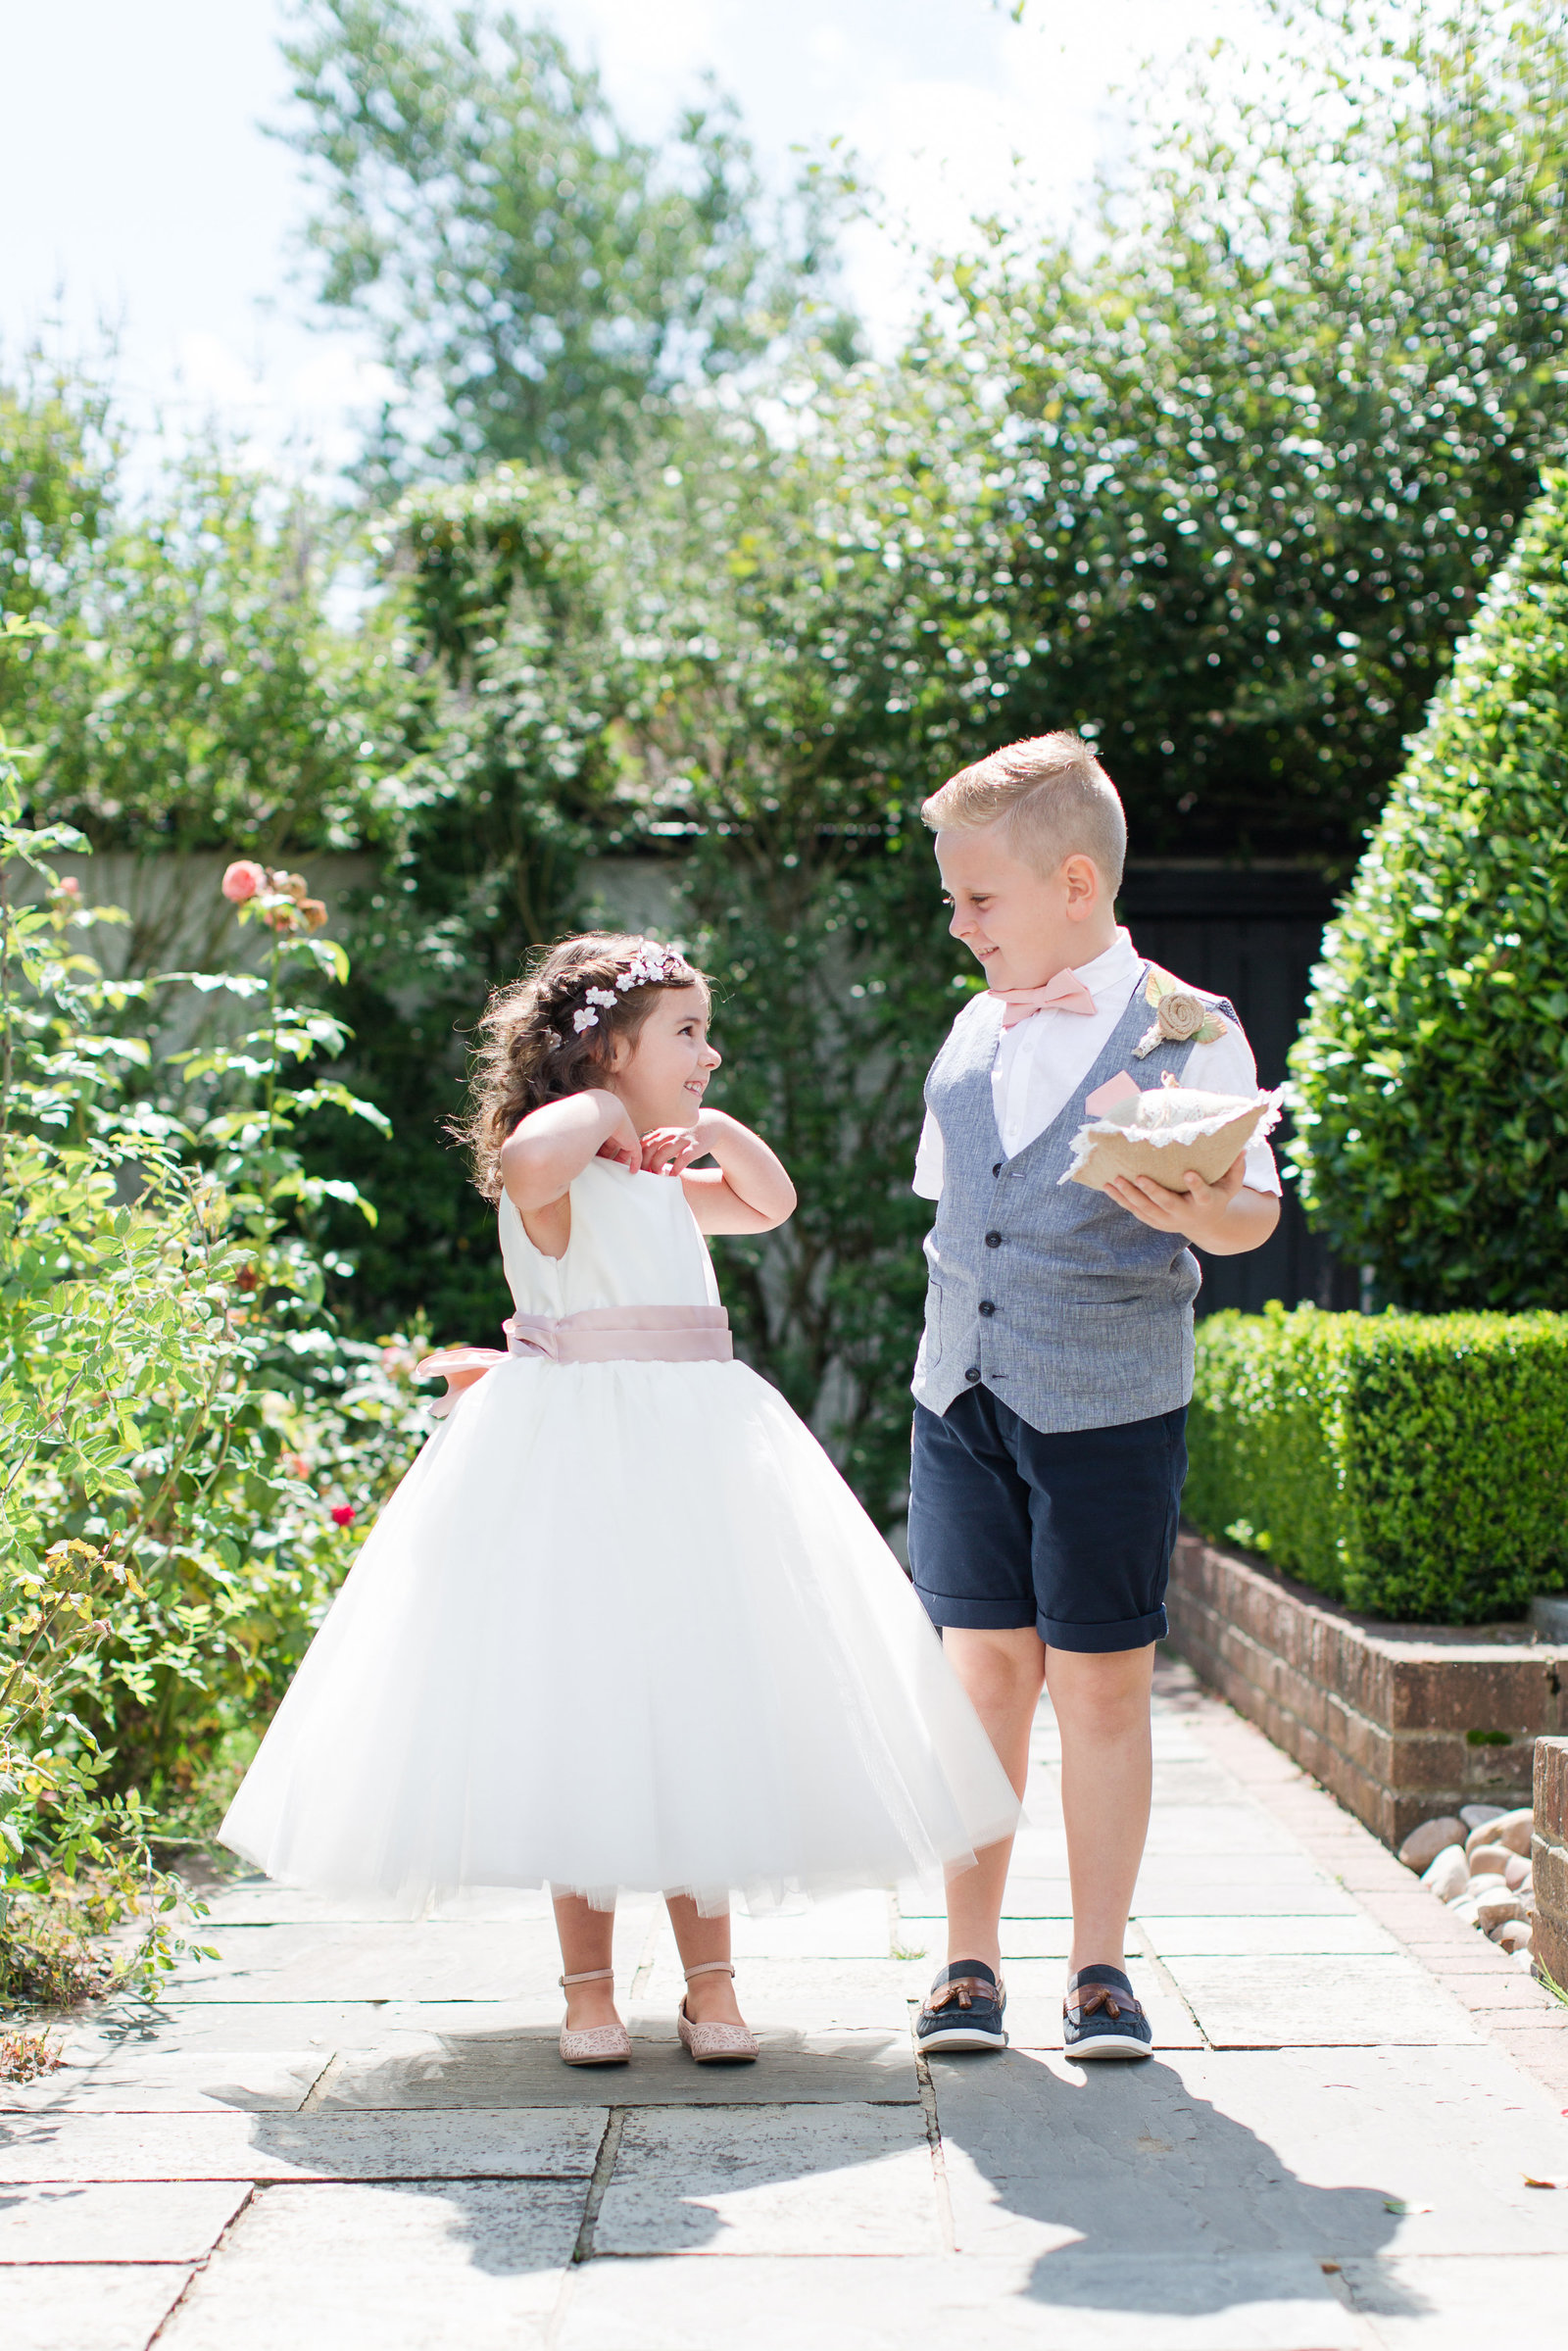 adorlee-244-wedding-photographer-chichester-west-sussex